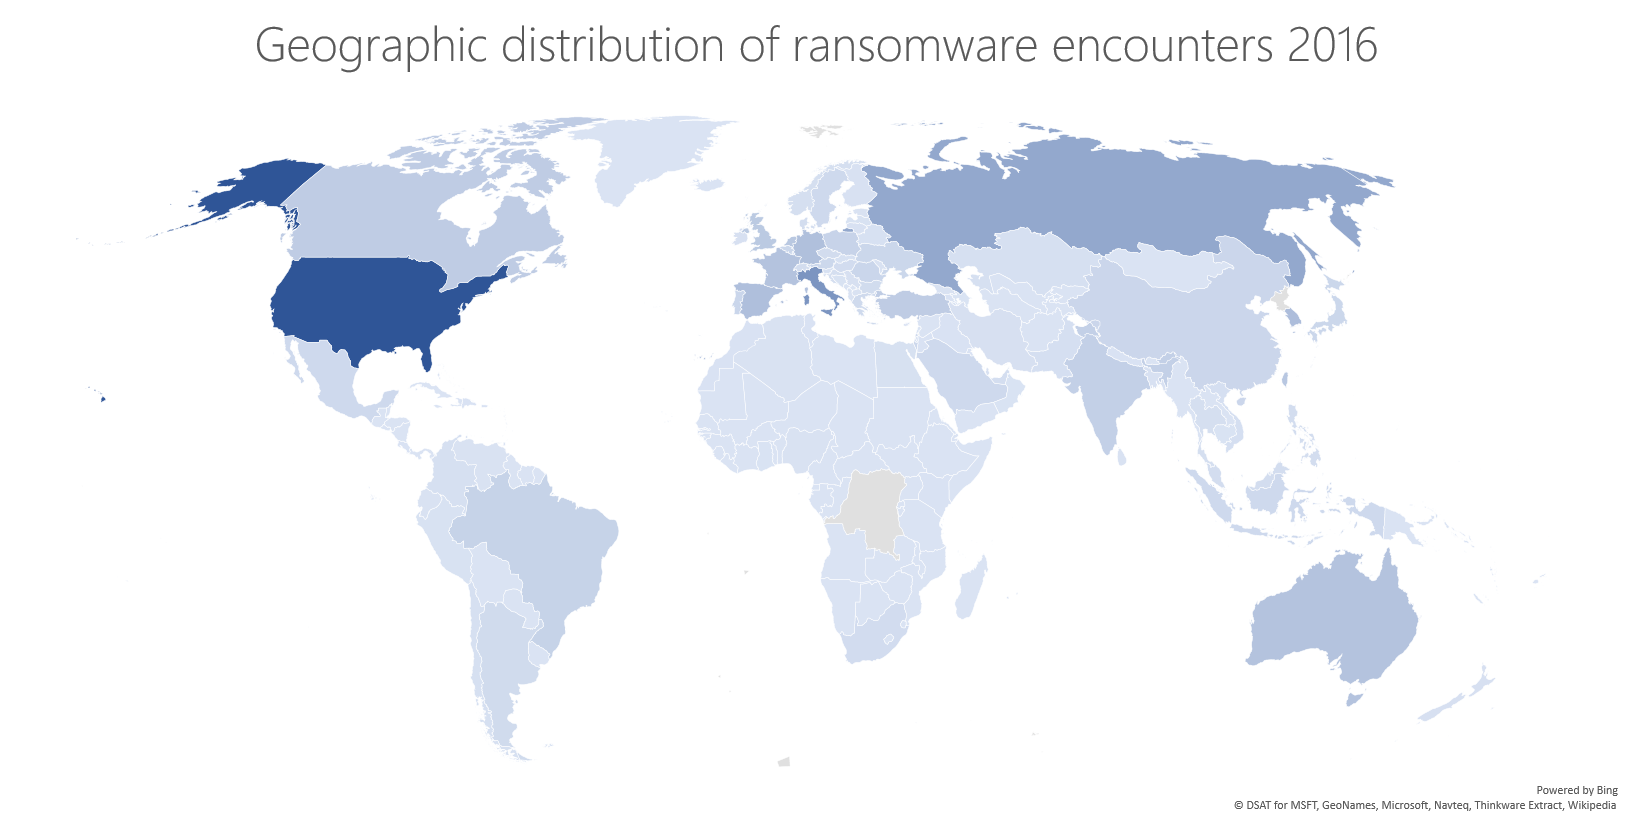 Geographic distribution of ransomware encounters, 2016